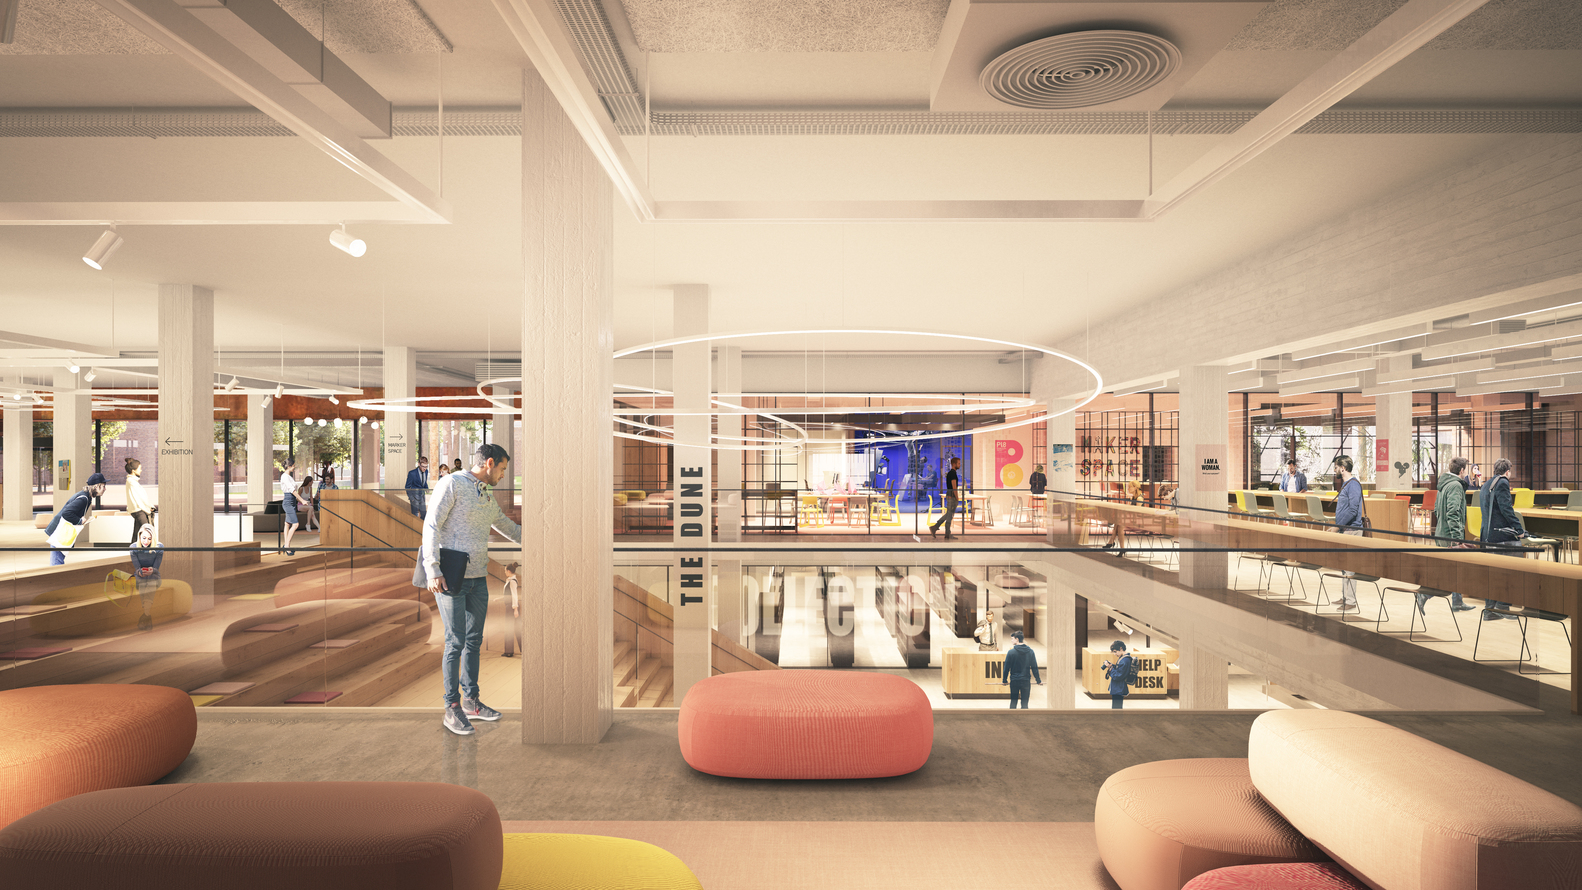 Library Furniture Australia Gallery Of Schmidt Hammer Lassen To Transform Curtin University